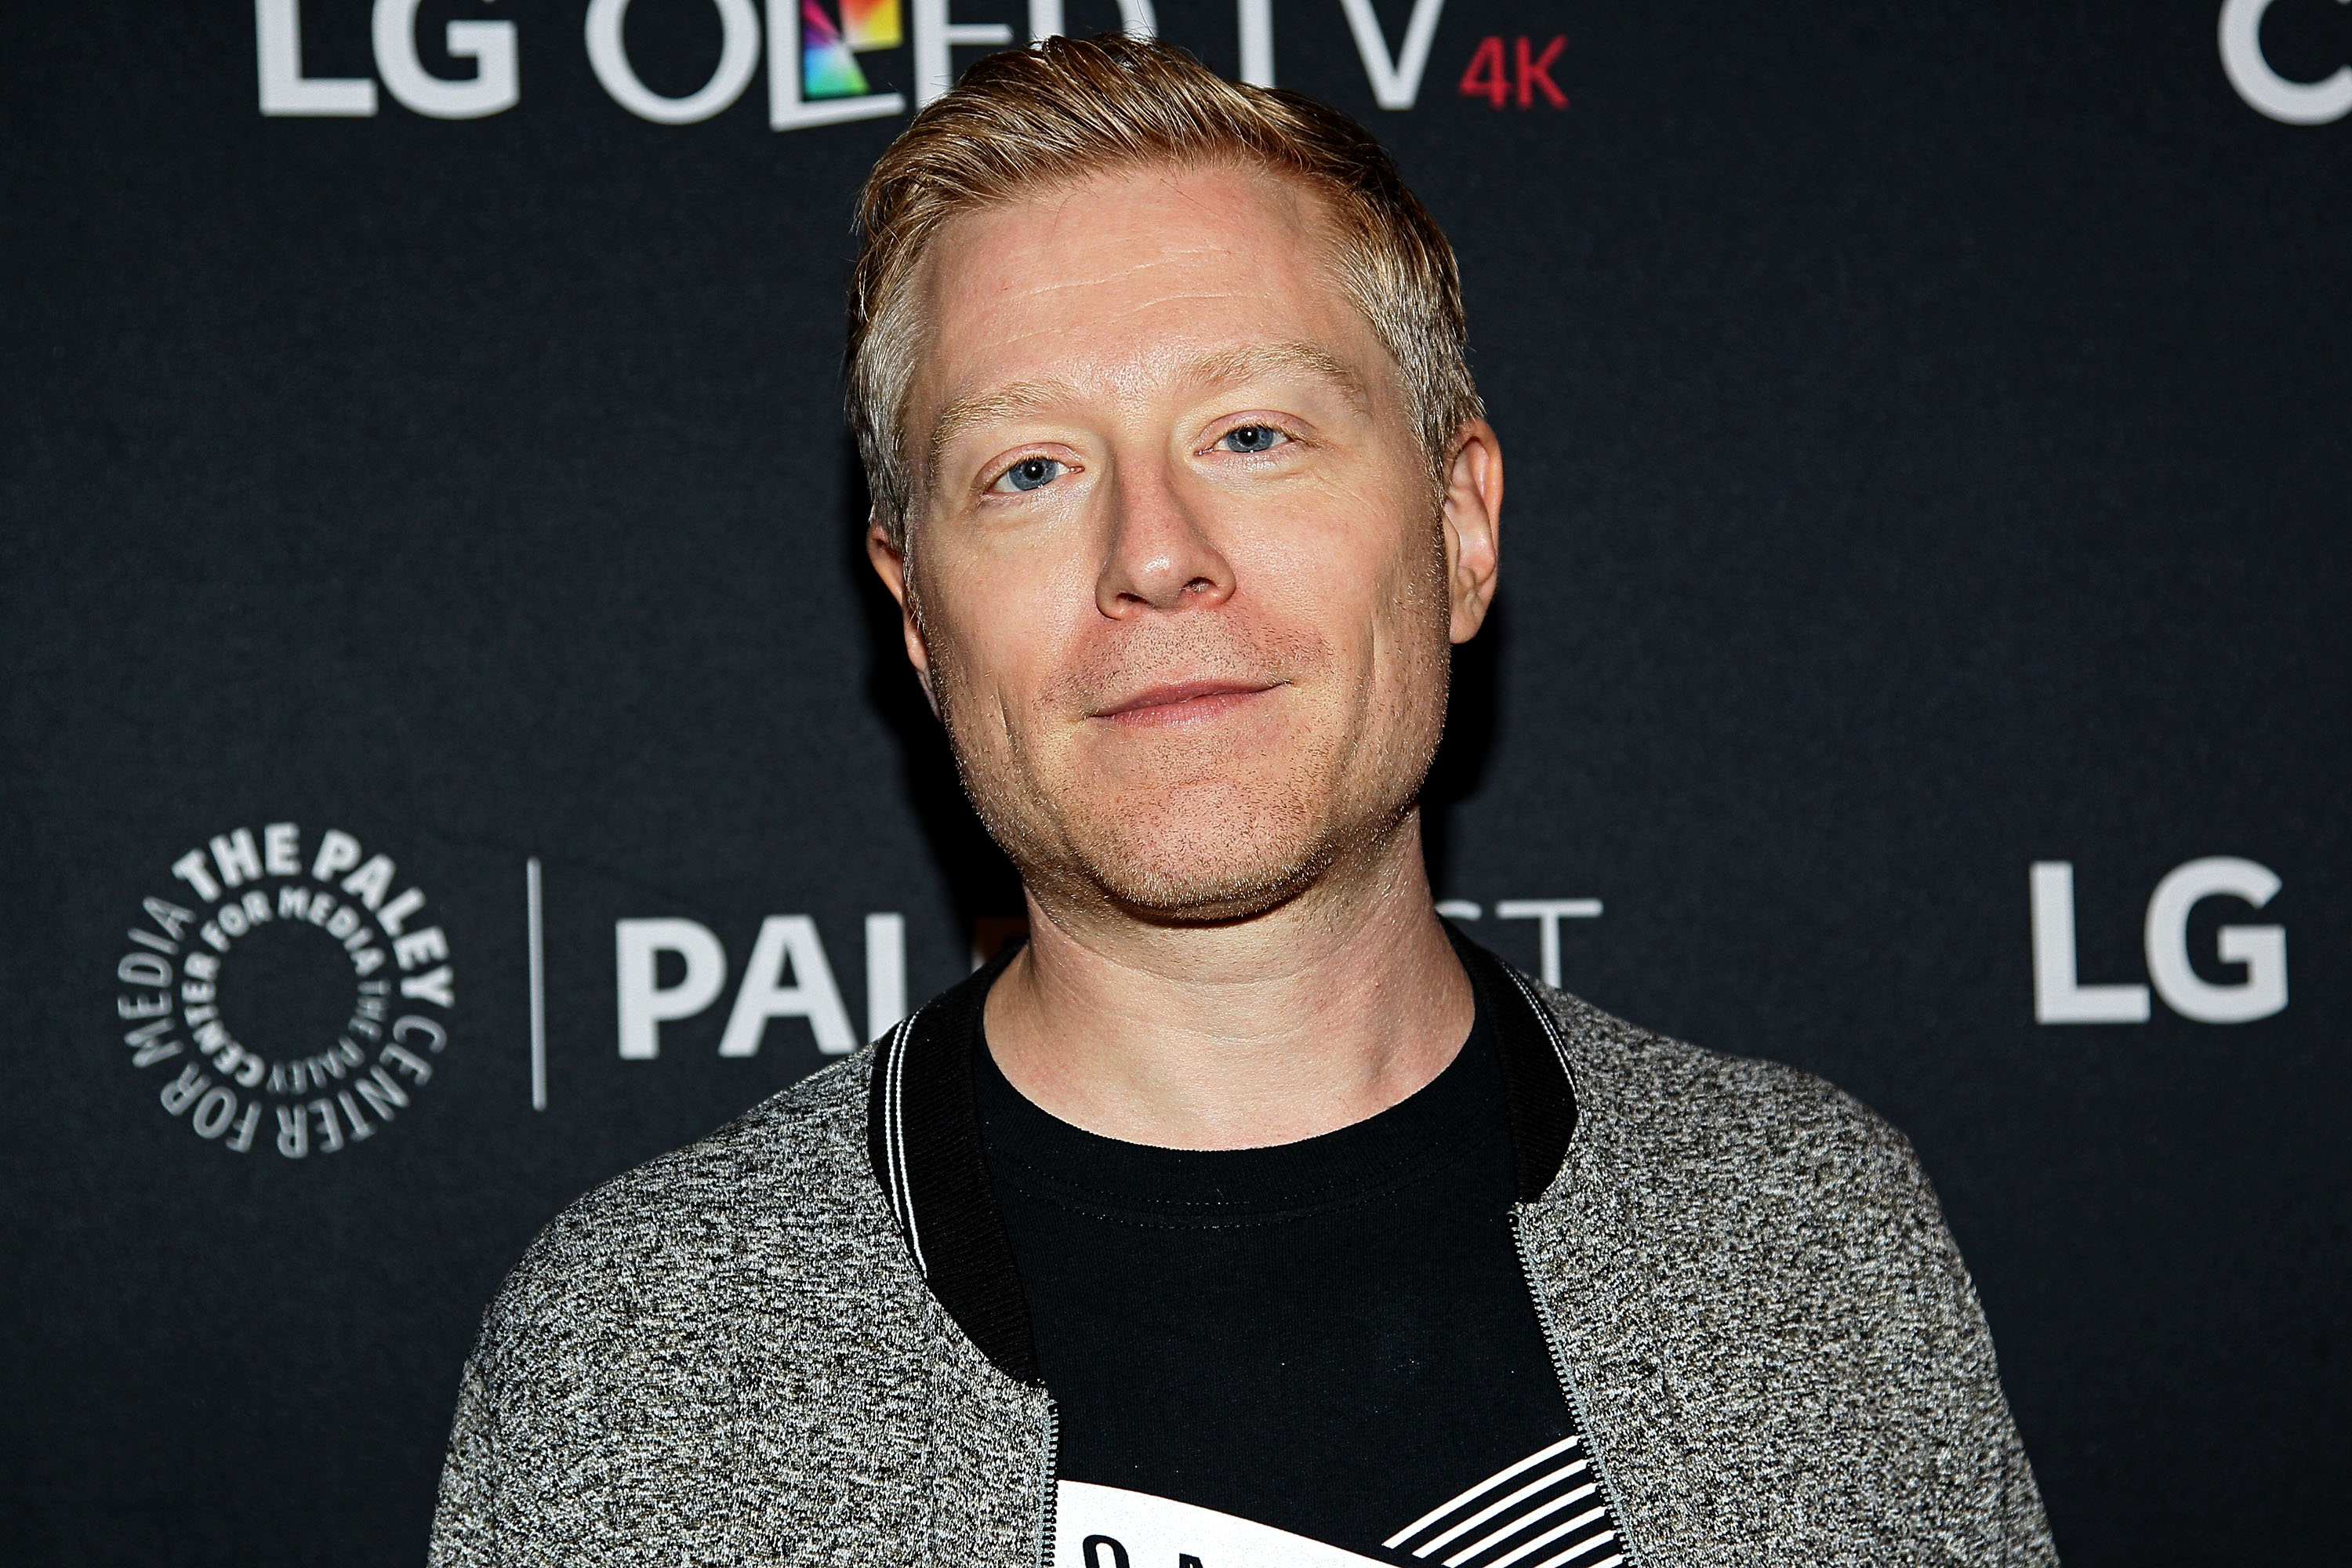 Anthony Rapp attends  Star Trek: Discovery  during the PaleyFest NY 2017 at The Paley Center for Media on October 7, 2017 in New York City.